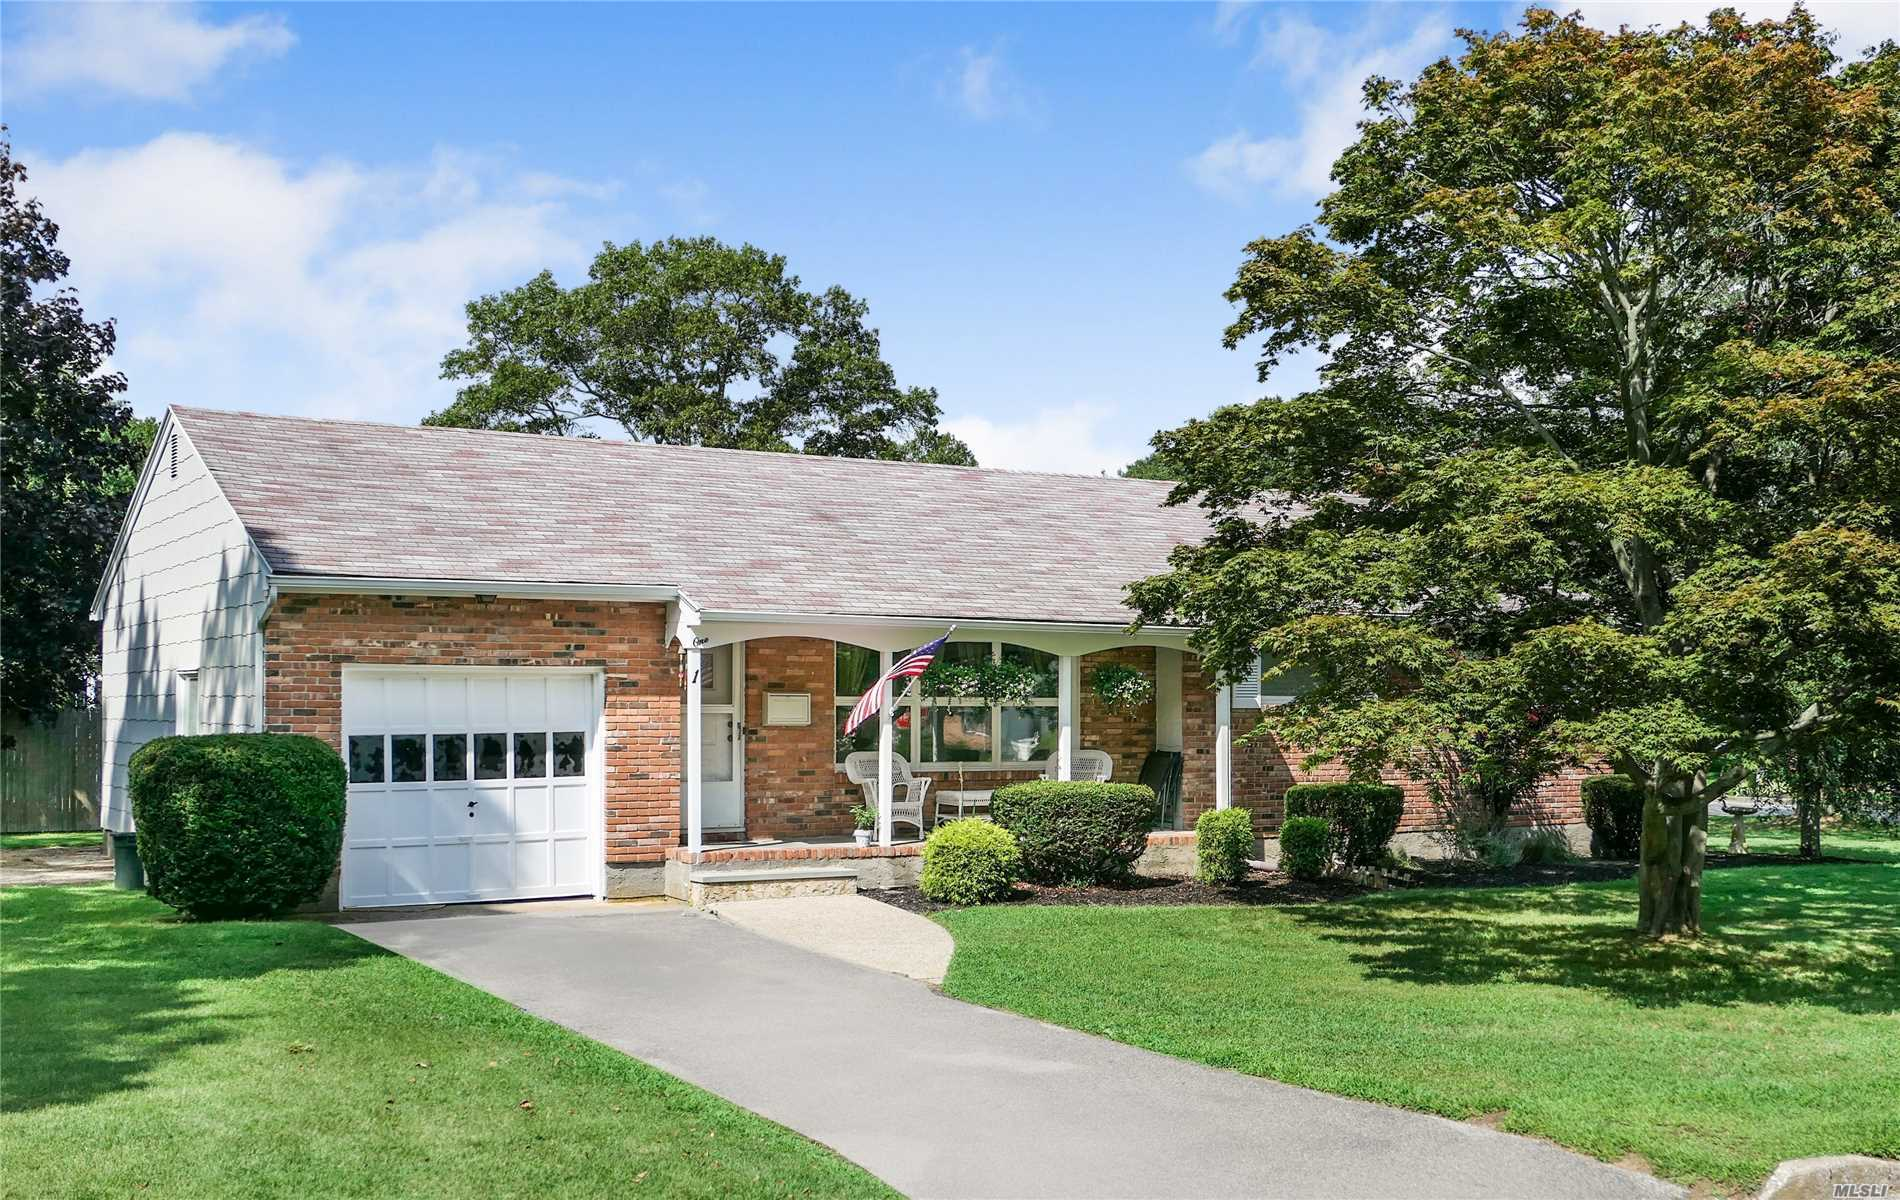 Photo of home for sale at 1 Cedar St, Bellport Village NY